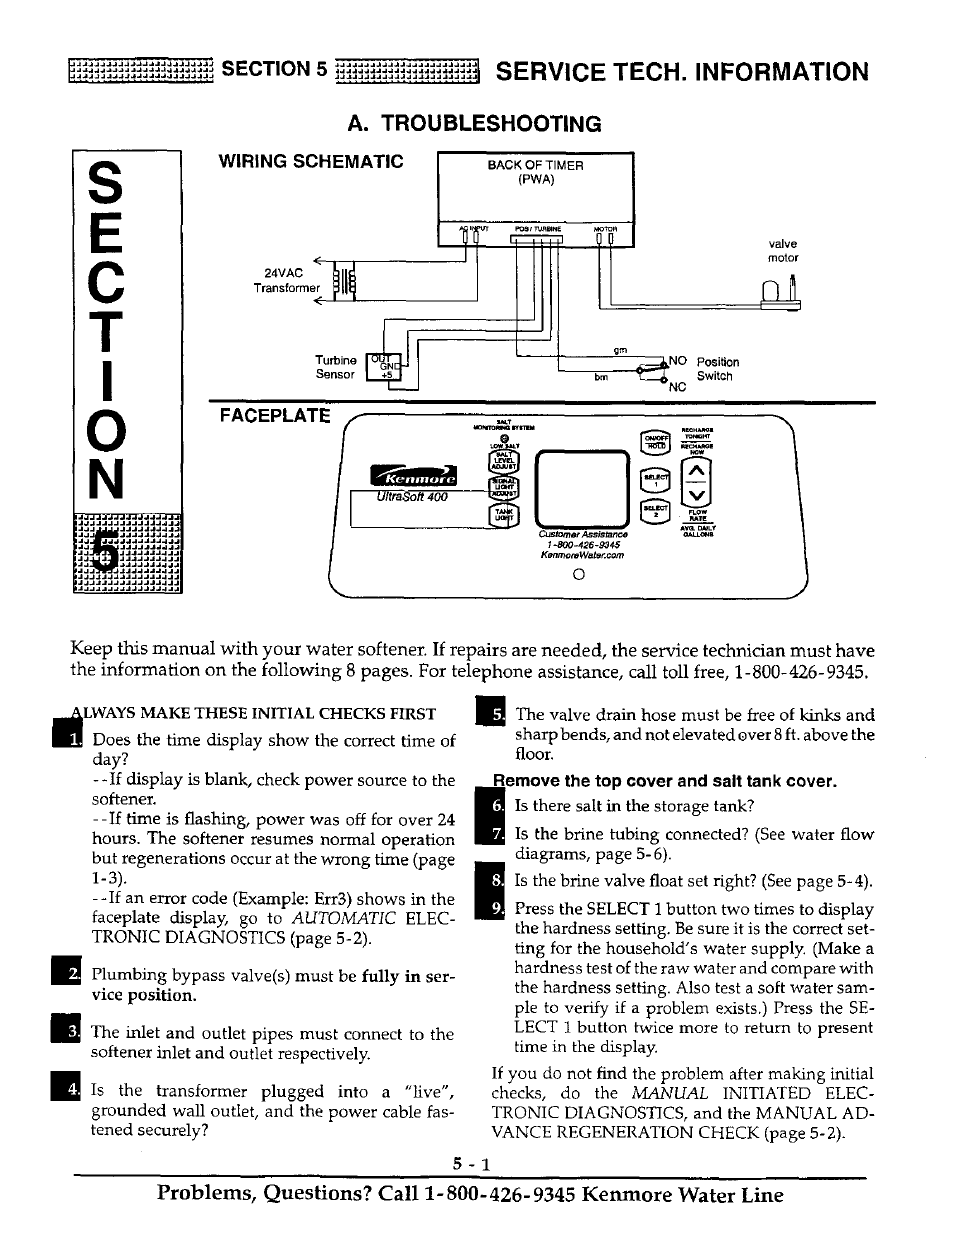 Wiring schematic, Faceplate, Ec t i | Kenmore ULTRASOFT 400 ... on hotpoint wiring diagrams, hobart wiring diagrams, buckley wiring diagrams, ge wiring diagrams, amana wiring diagrams, westinghouse wiring diagrams, viking wiring diagrams, speed queen wiring diagrams, samsung wiring diagrams, sears wiring diagrams, dacor wiring diagrams, kitchenaid wiring diagrams, craftsman wiring diagrams, whirlpool wiring diagrams, lg wiring diagrams, eaton wiring diagrams, gibson wiring diagrams, frigidaire wiring diagrams, panasonic wiring diagrams, maytag wiring diagrams,